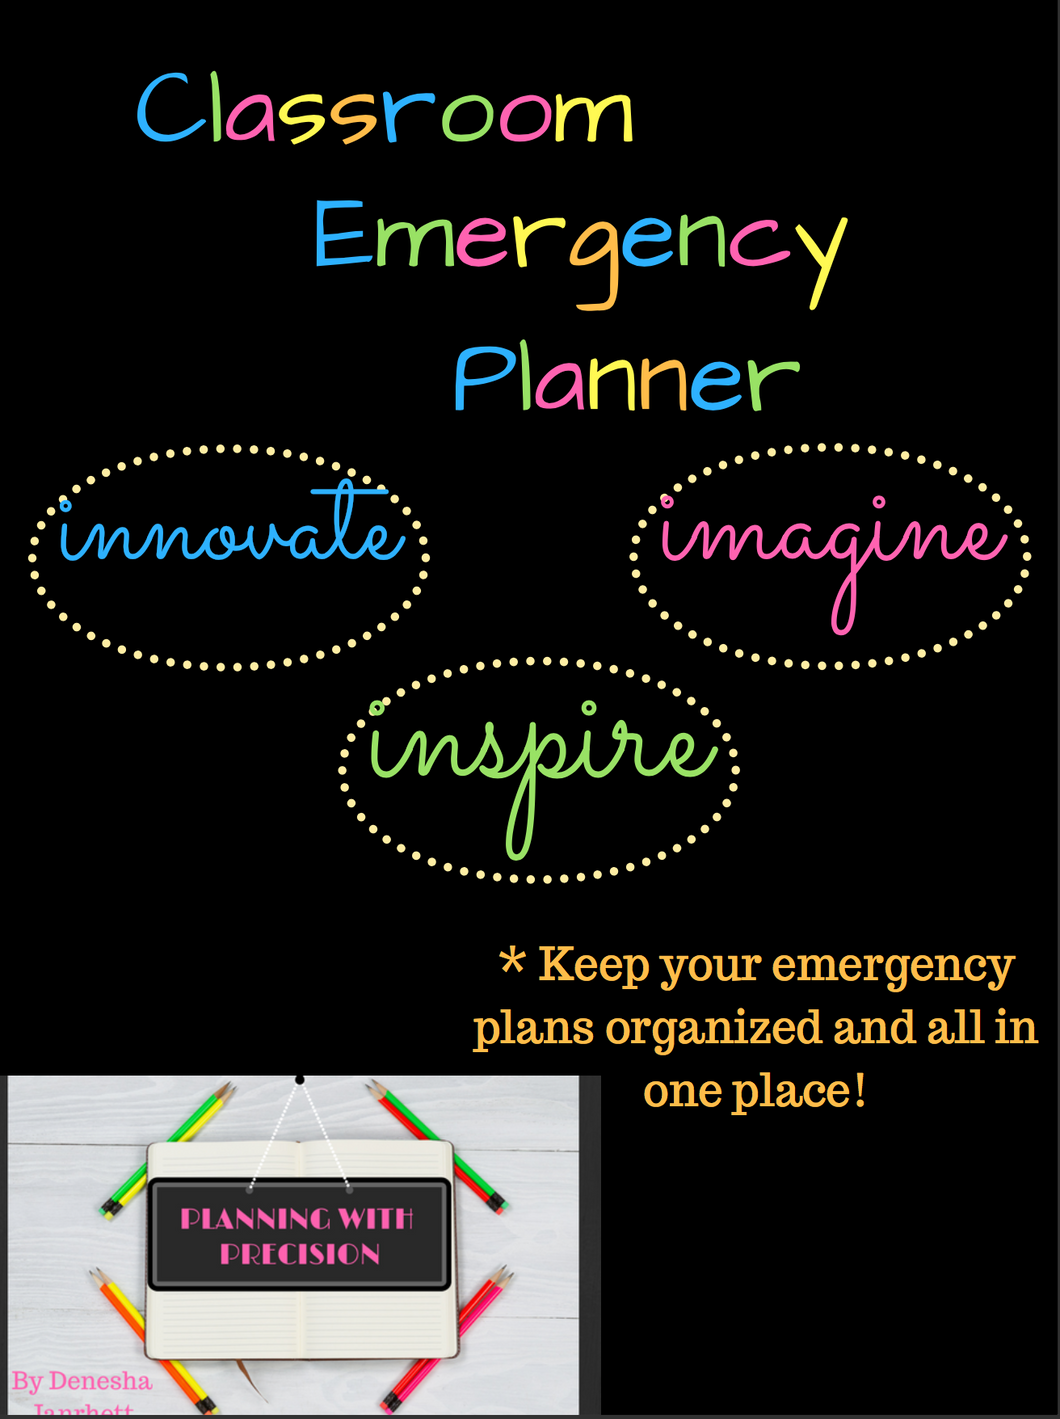 Classroom Emergency Planner